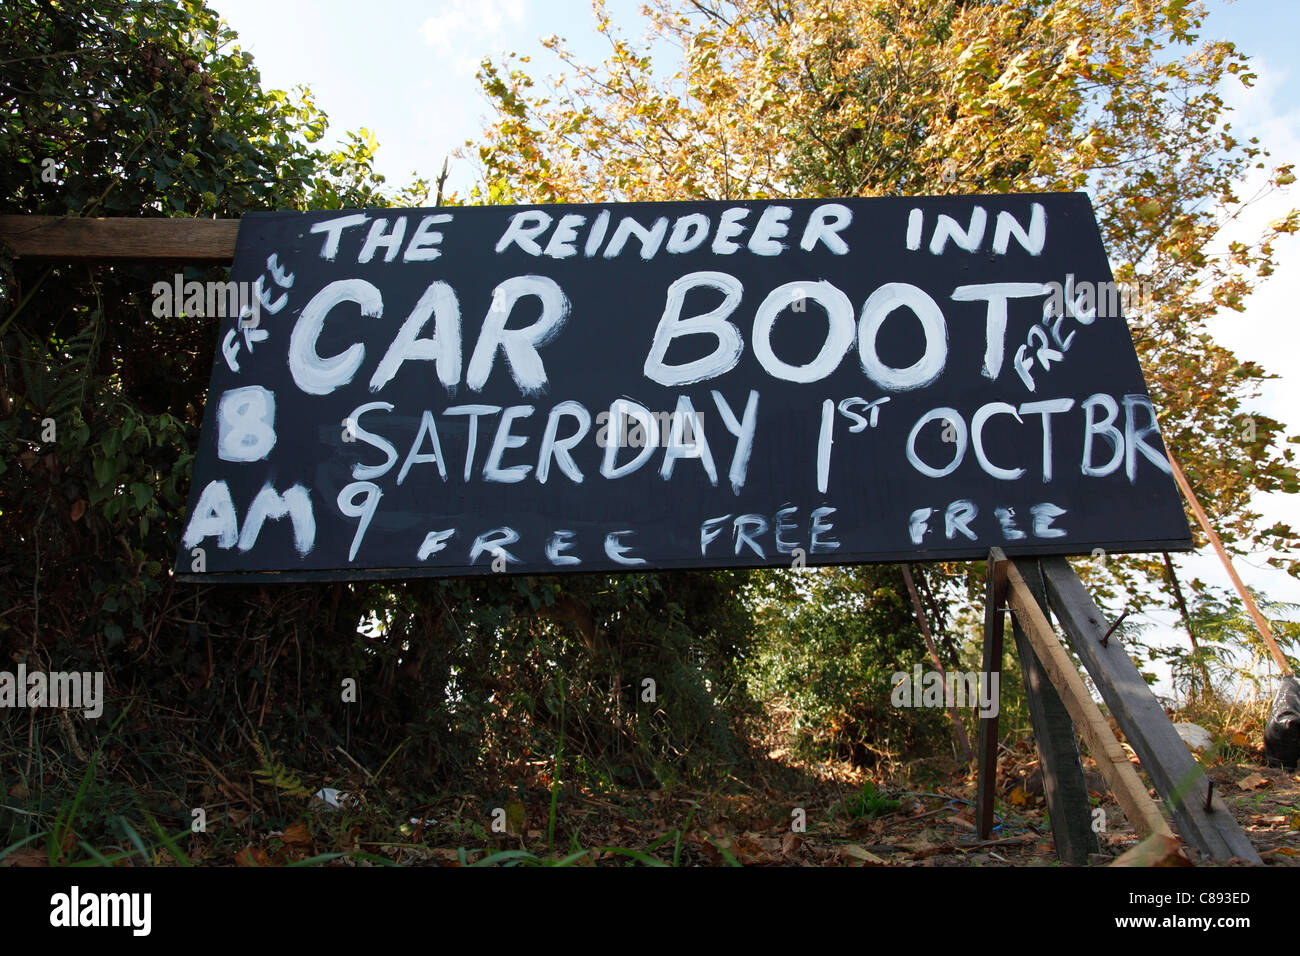 Incorrect spelling on a roadside sign advertising a car boot sale in the U.K. - Stock Image